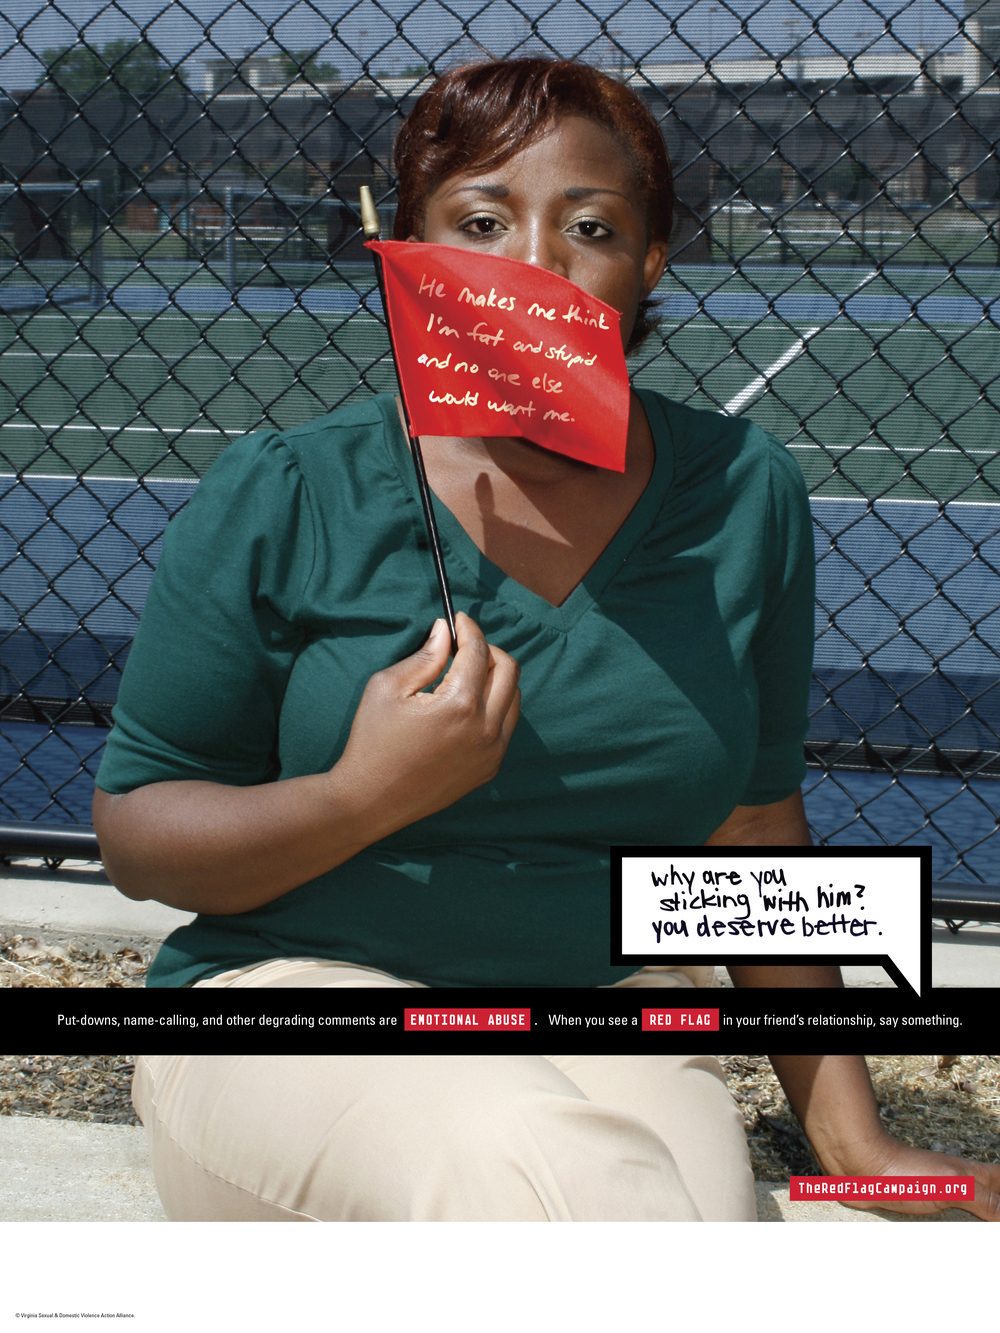 Red Flag Campaign poster: Emotional Abuse